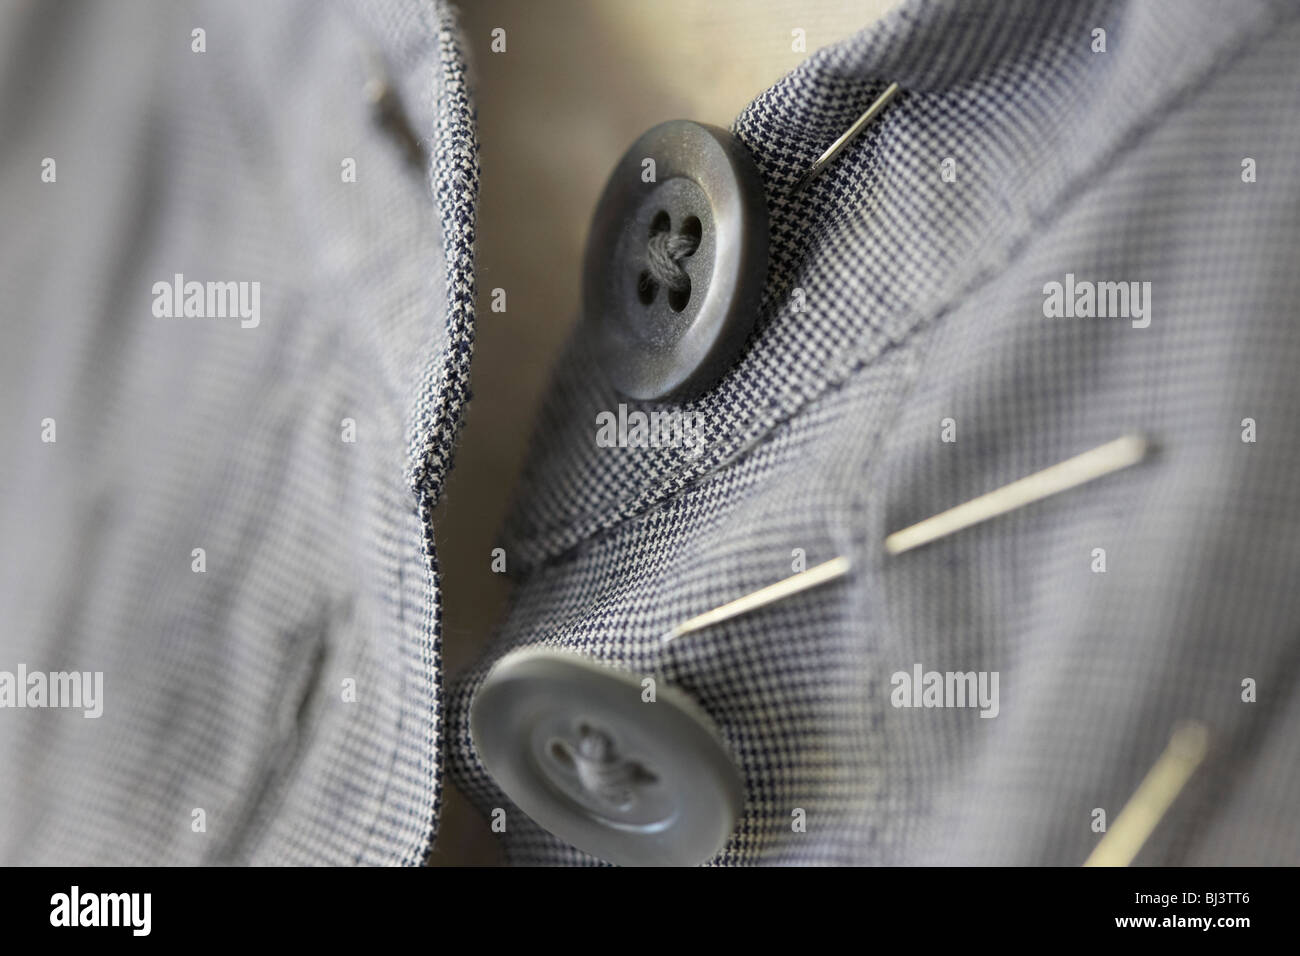 detail-of-fine-stitching-of-a-cotton-dre